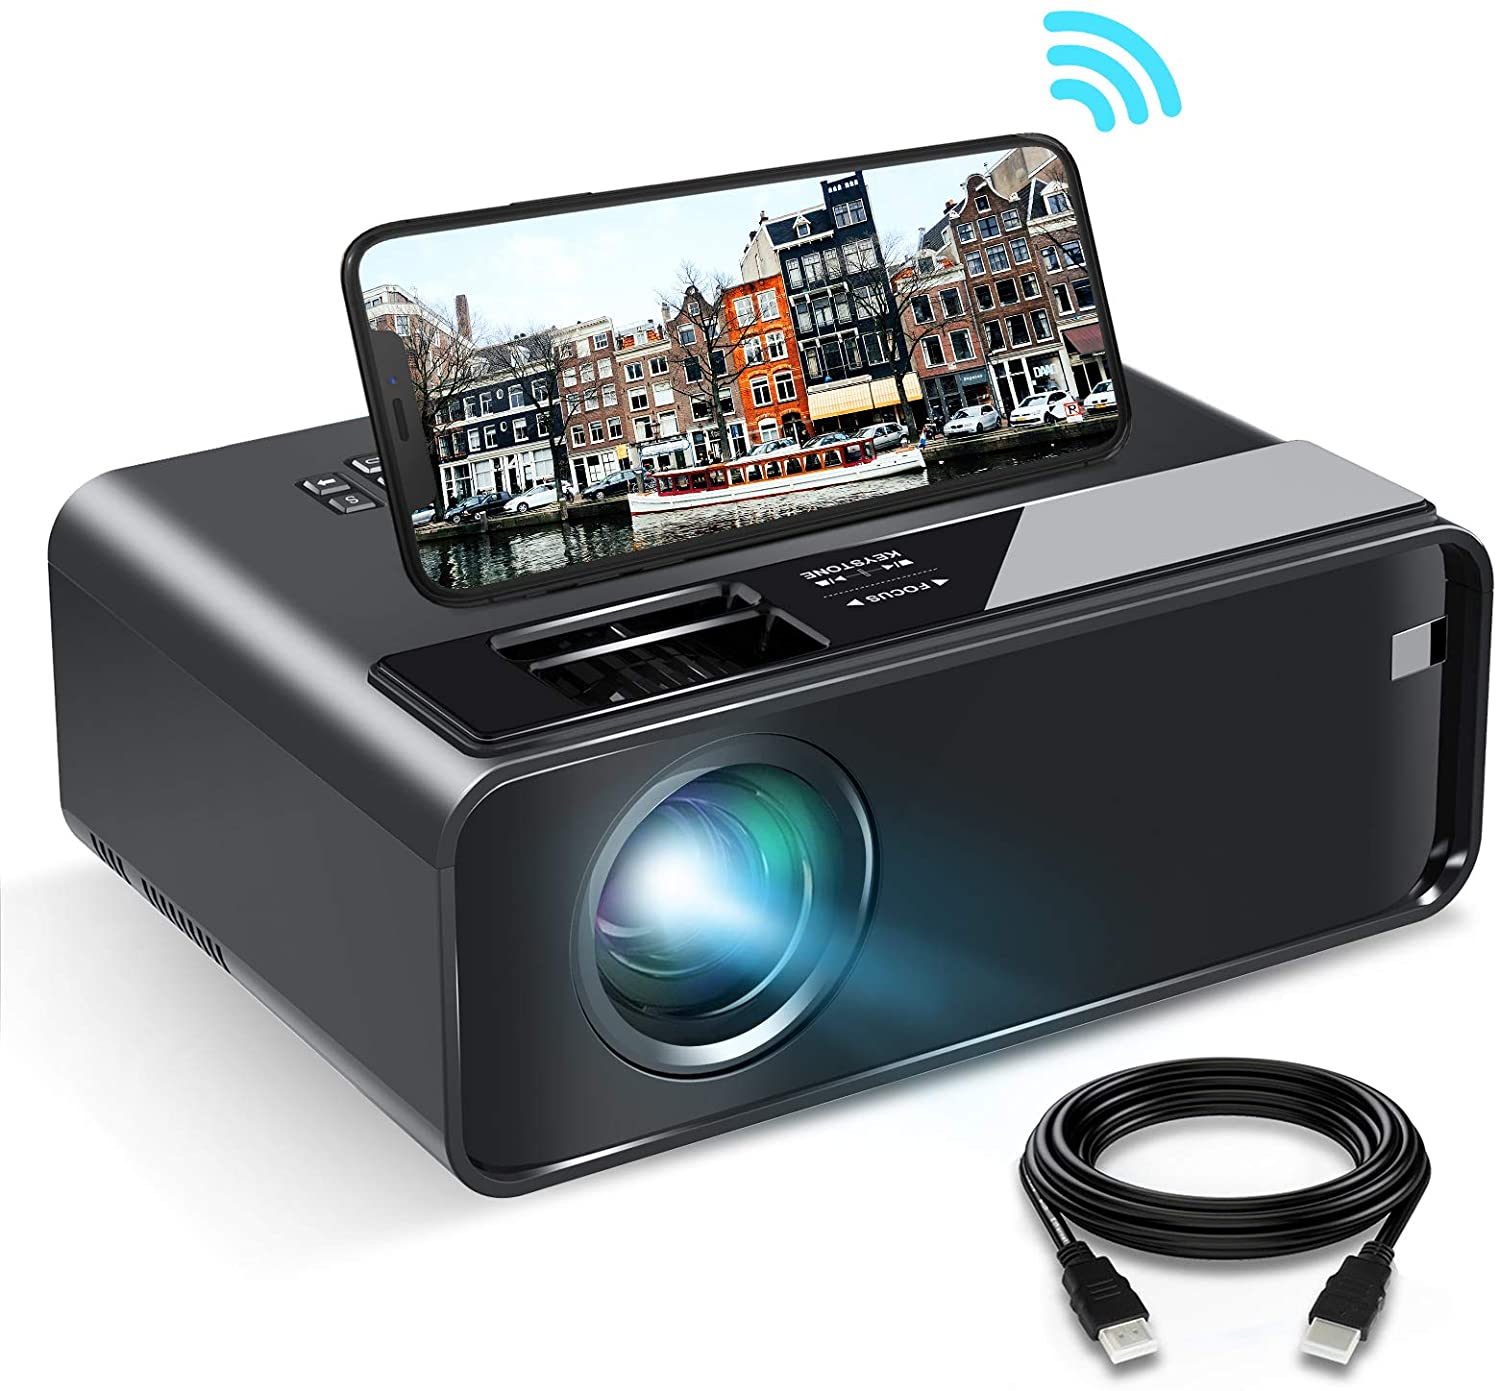 The Elephas Mini Projector features wireless support